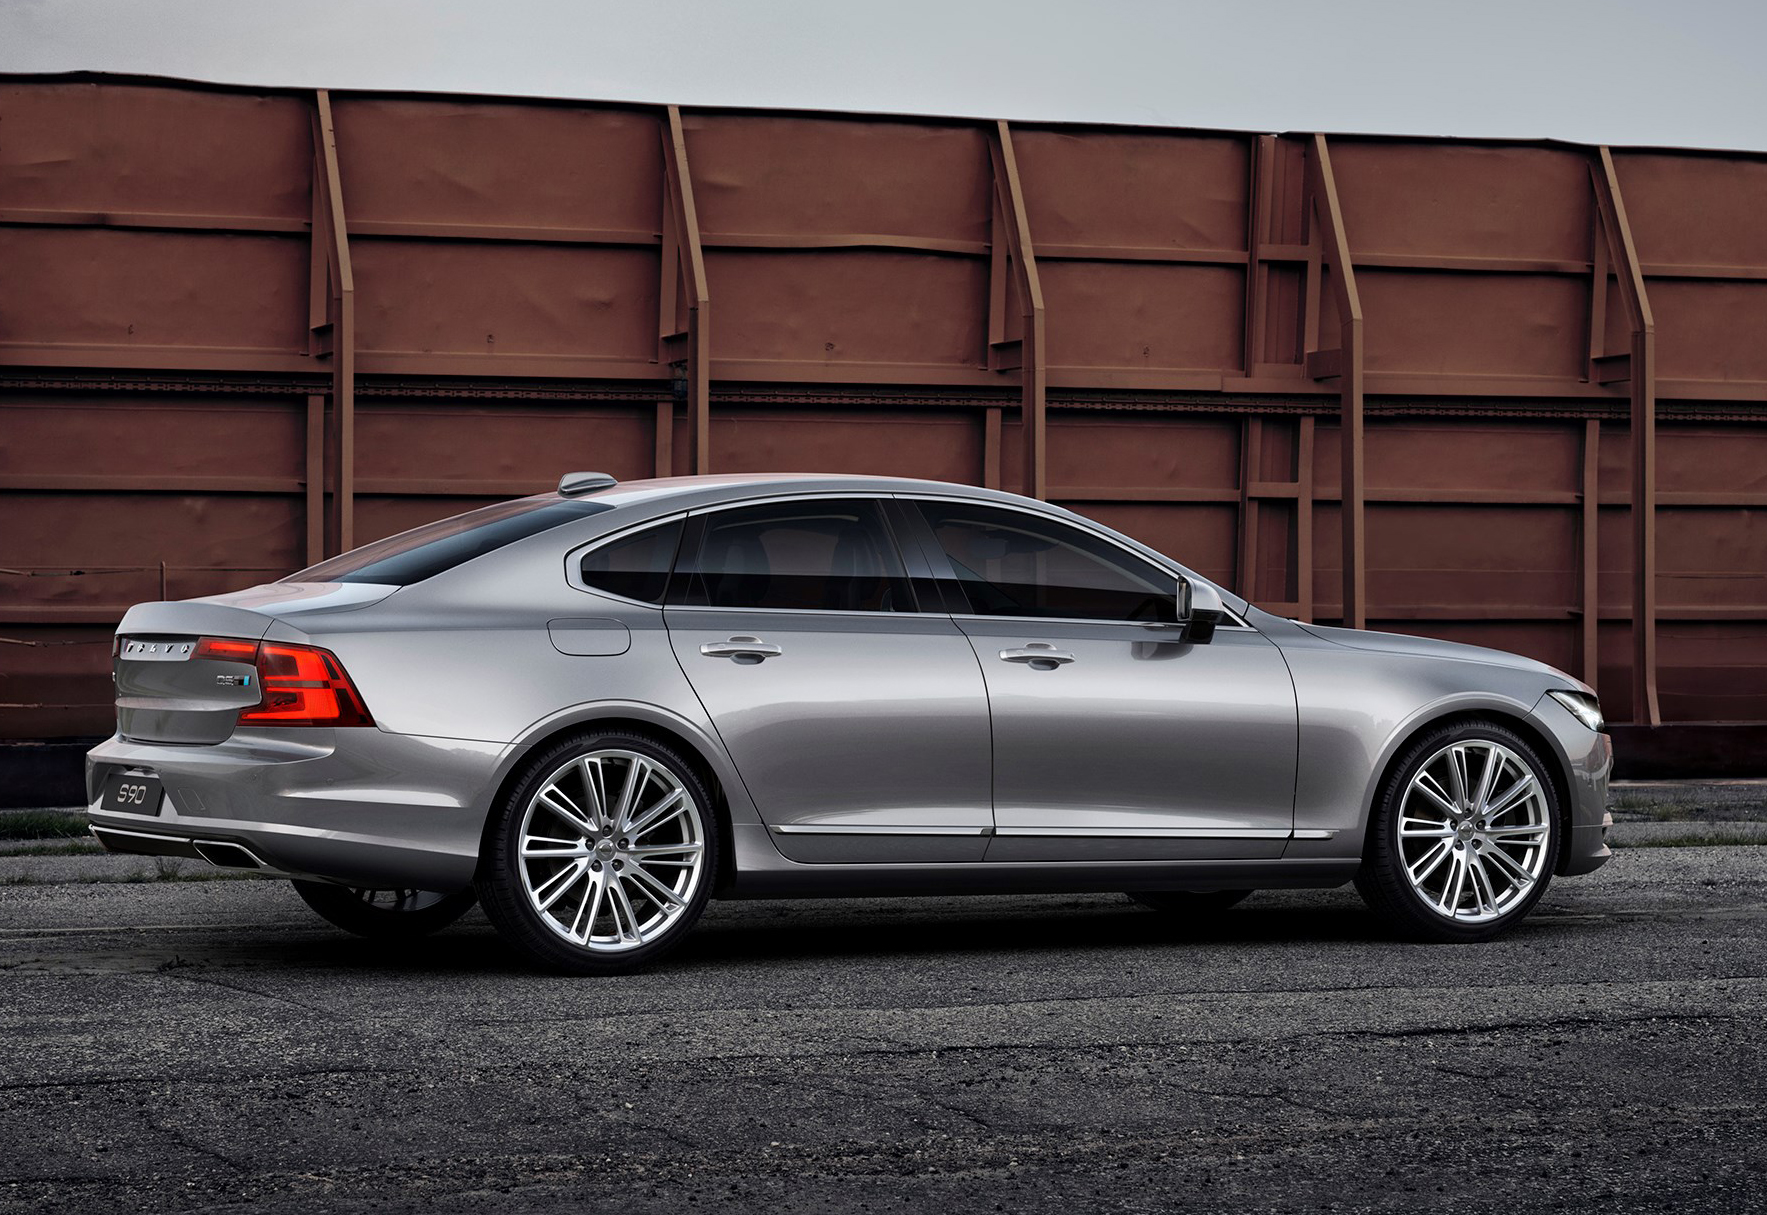 193451_New_Polestar_performance_package_now_available_for_the_Volvo_S90_and_V90.jpg